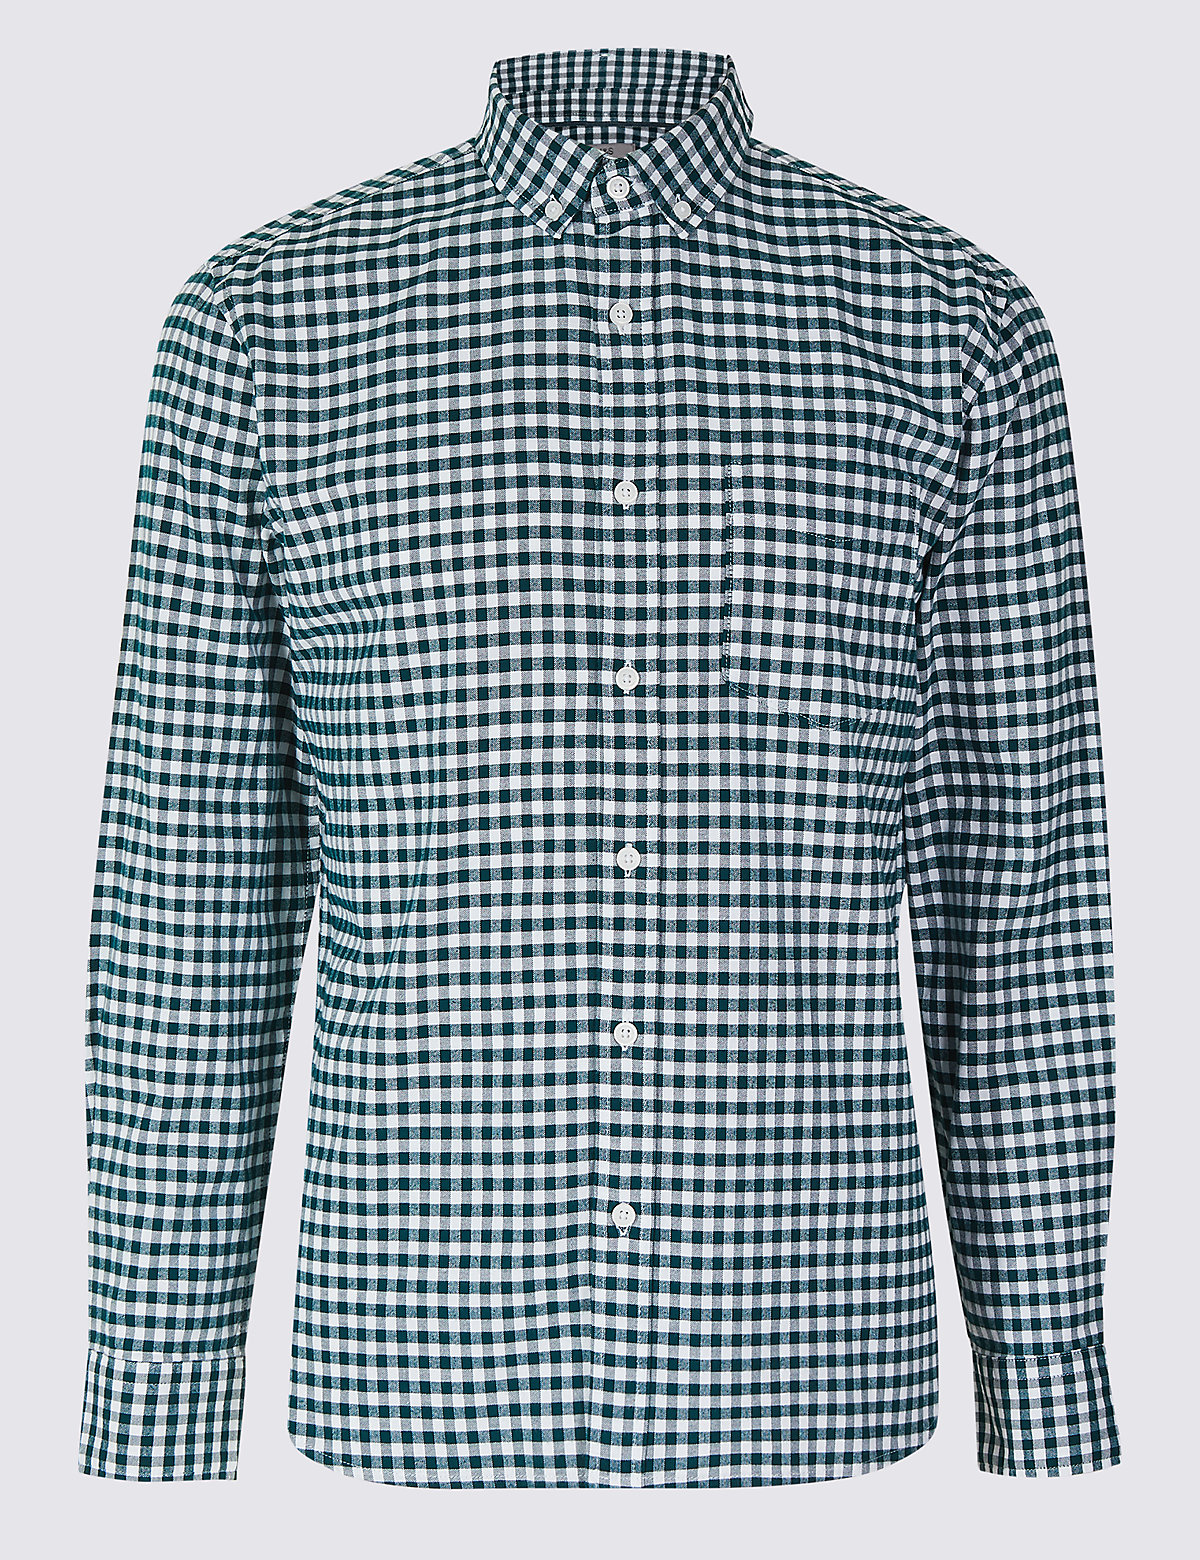 Marks & Spencer Evergreen Pure Cotton Slim Fit Checked Oxford Shirt